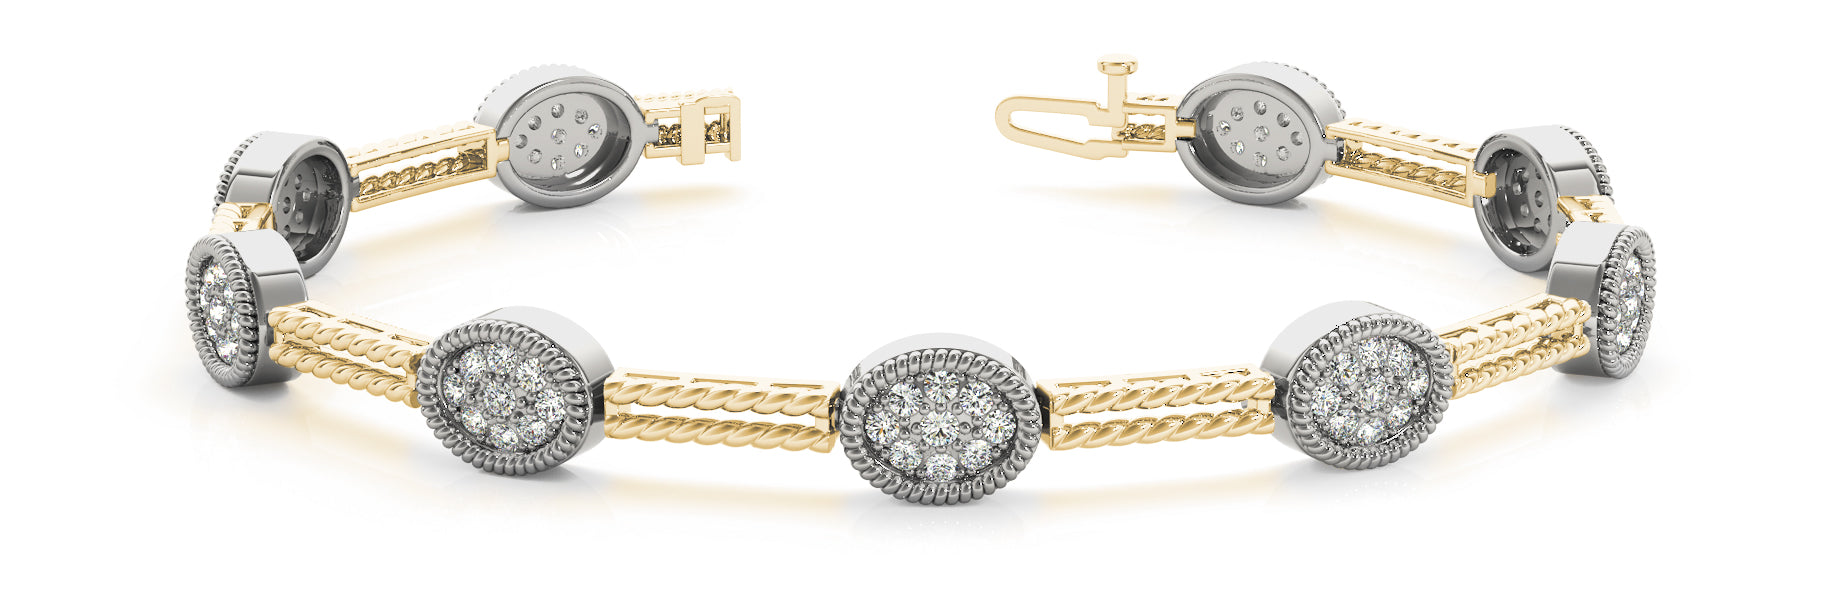 Fancy Diamond Bracelet Ladies 1.91ct tw - 14kt Yellow Gold